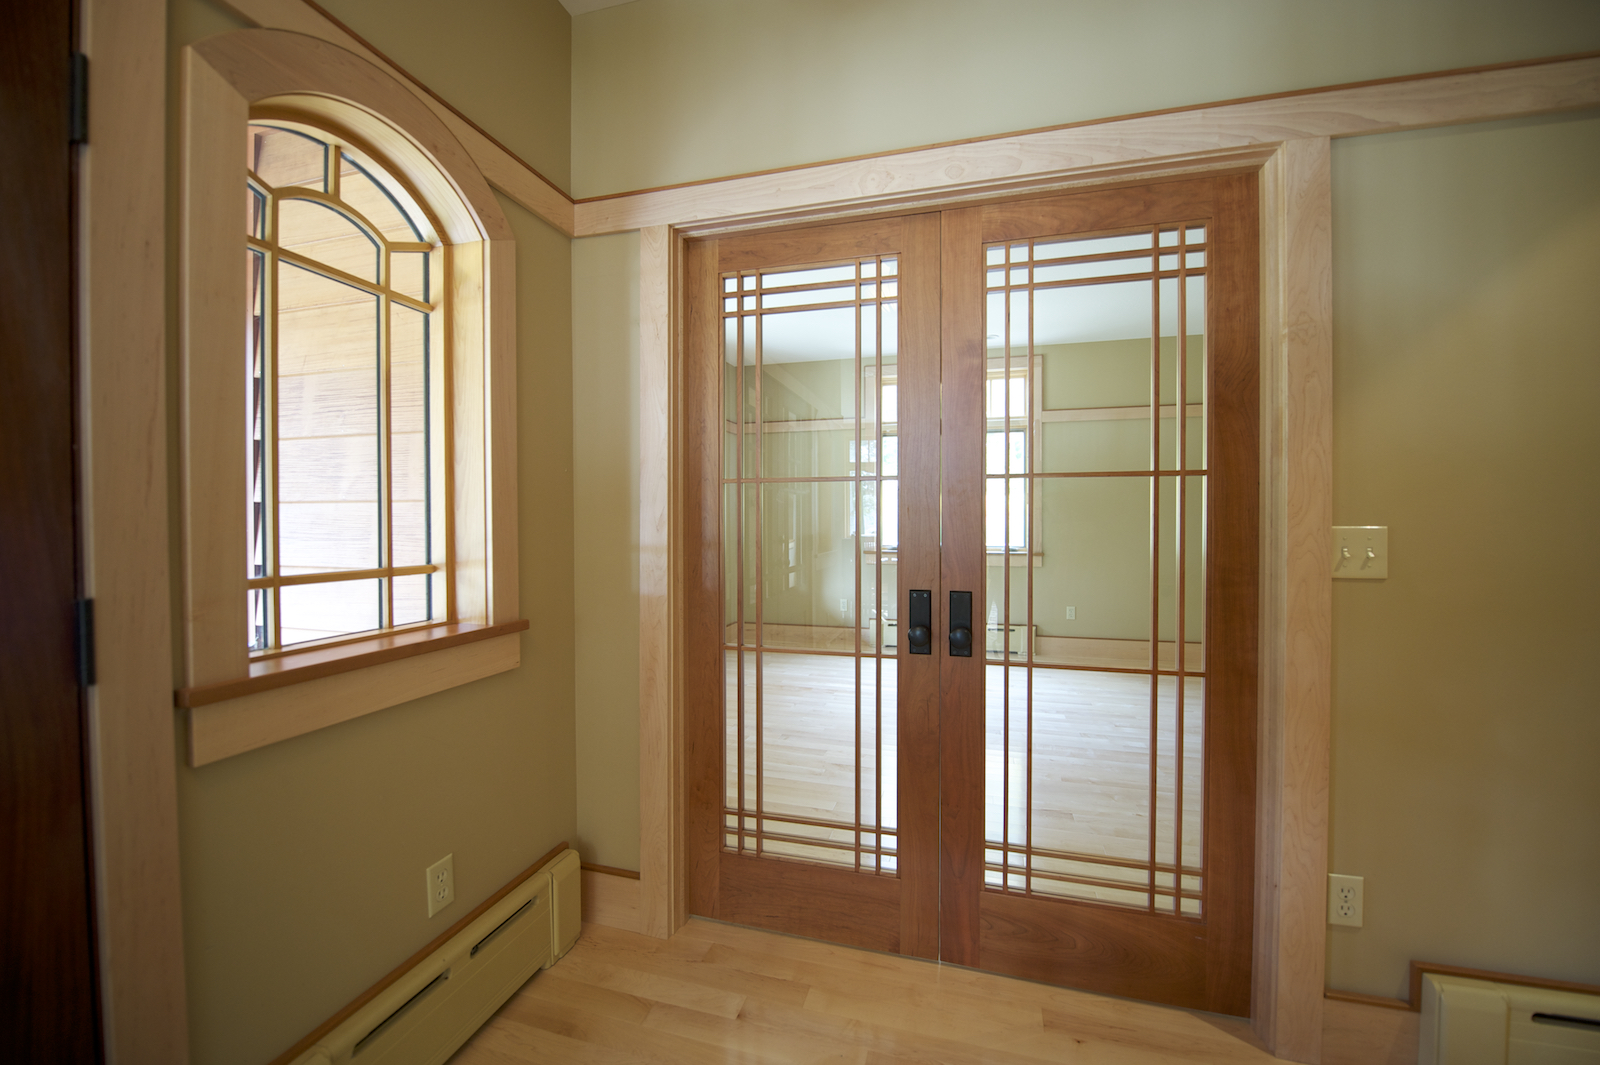 Doors_Door_Interior_Millwork_Craftsmanship_New_Holland_Lancaster_PA_Woodworking_Greenbank_Millwork_020